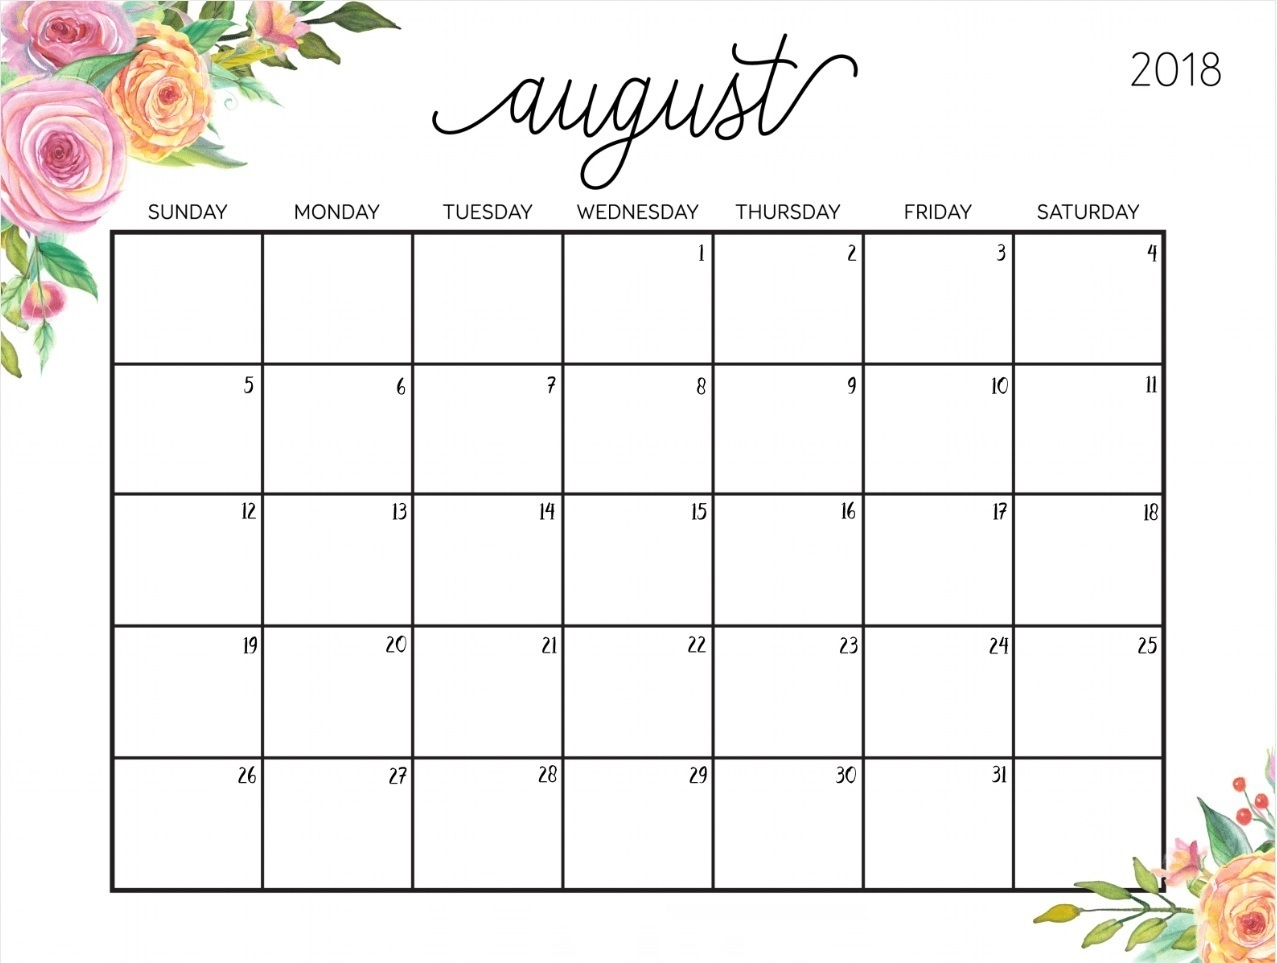 cute august 2018 calendar template printable calendar 2018 Cute Printable Calendar For August 2018 erdferdf